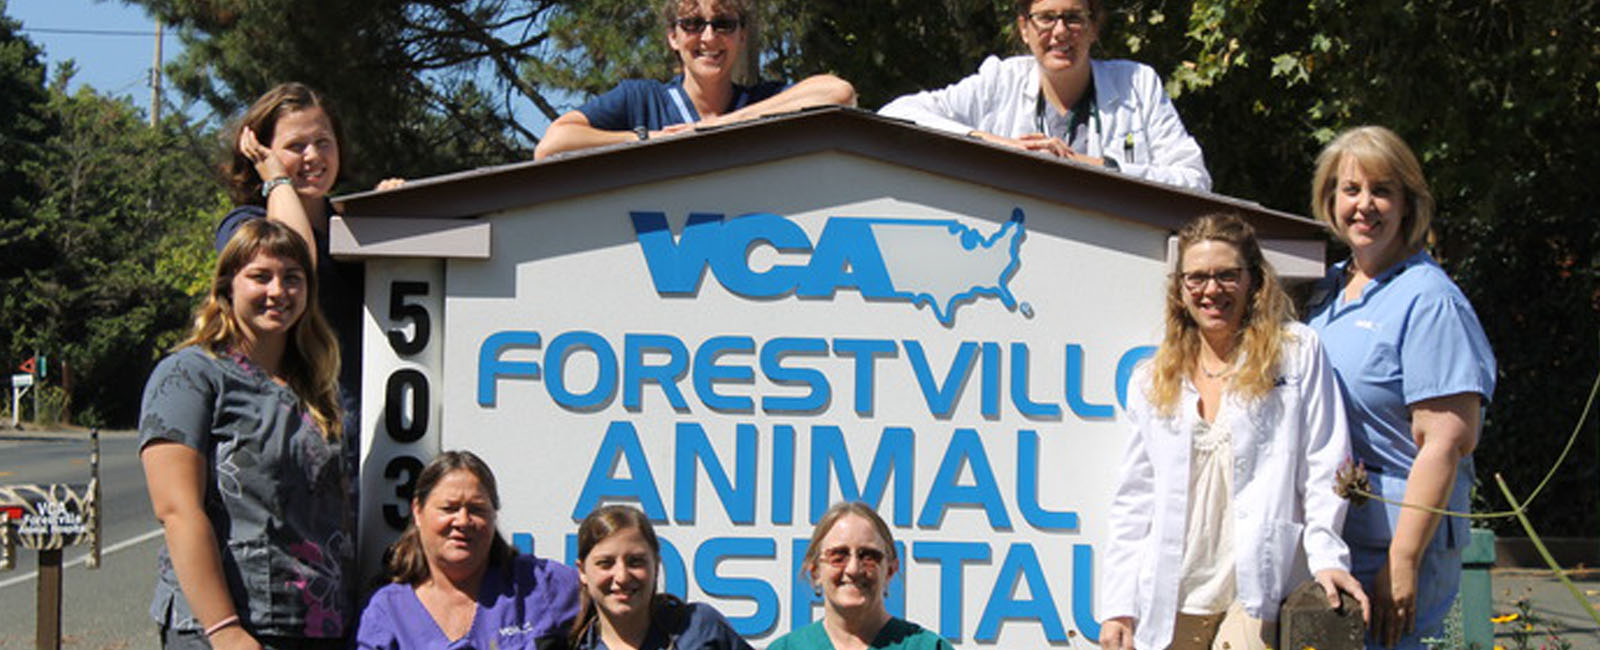 Homepage Team Picture of VCA Forestville Animal Hospital